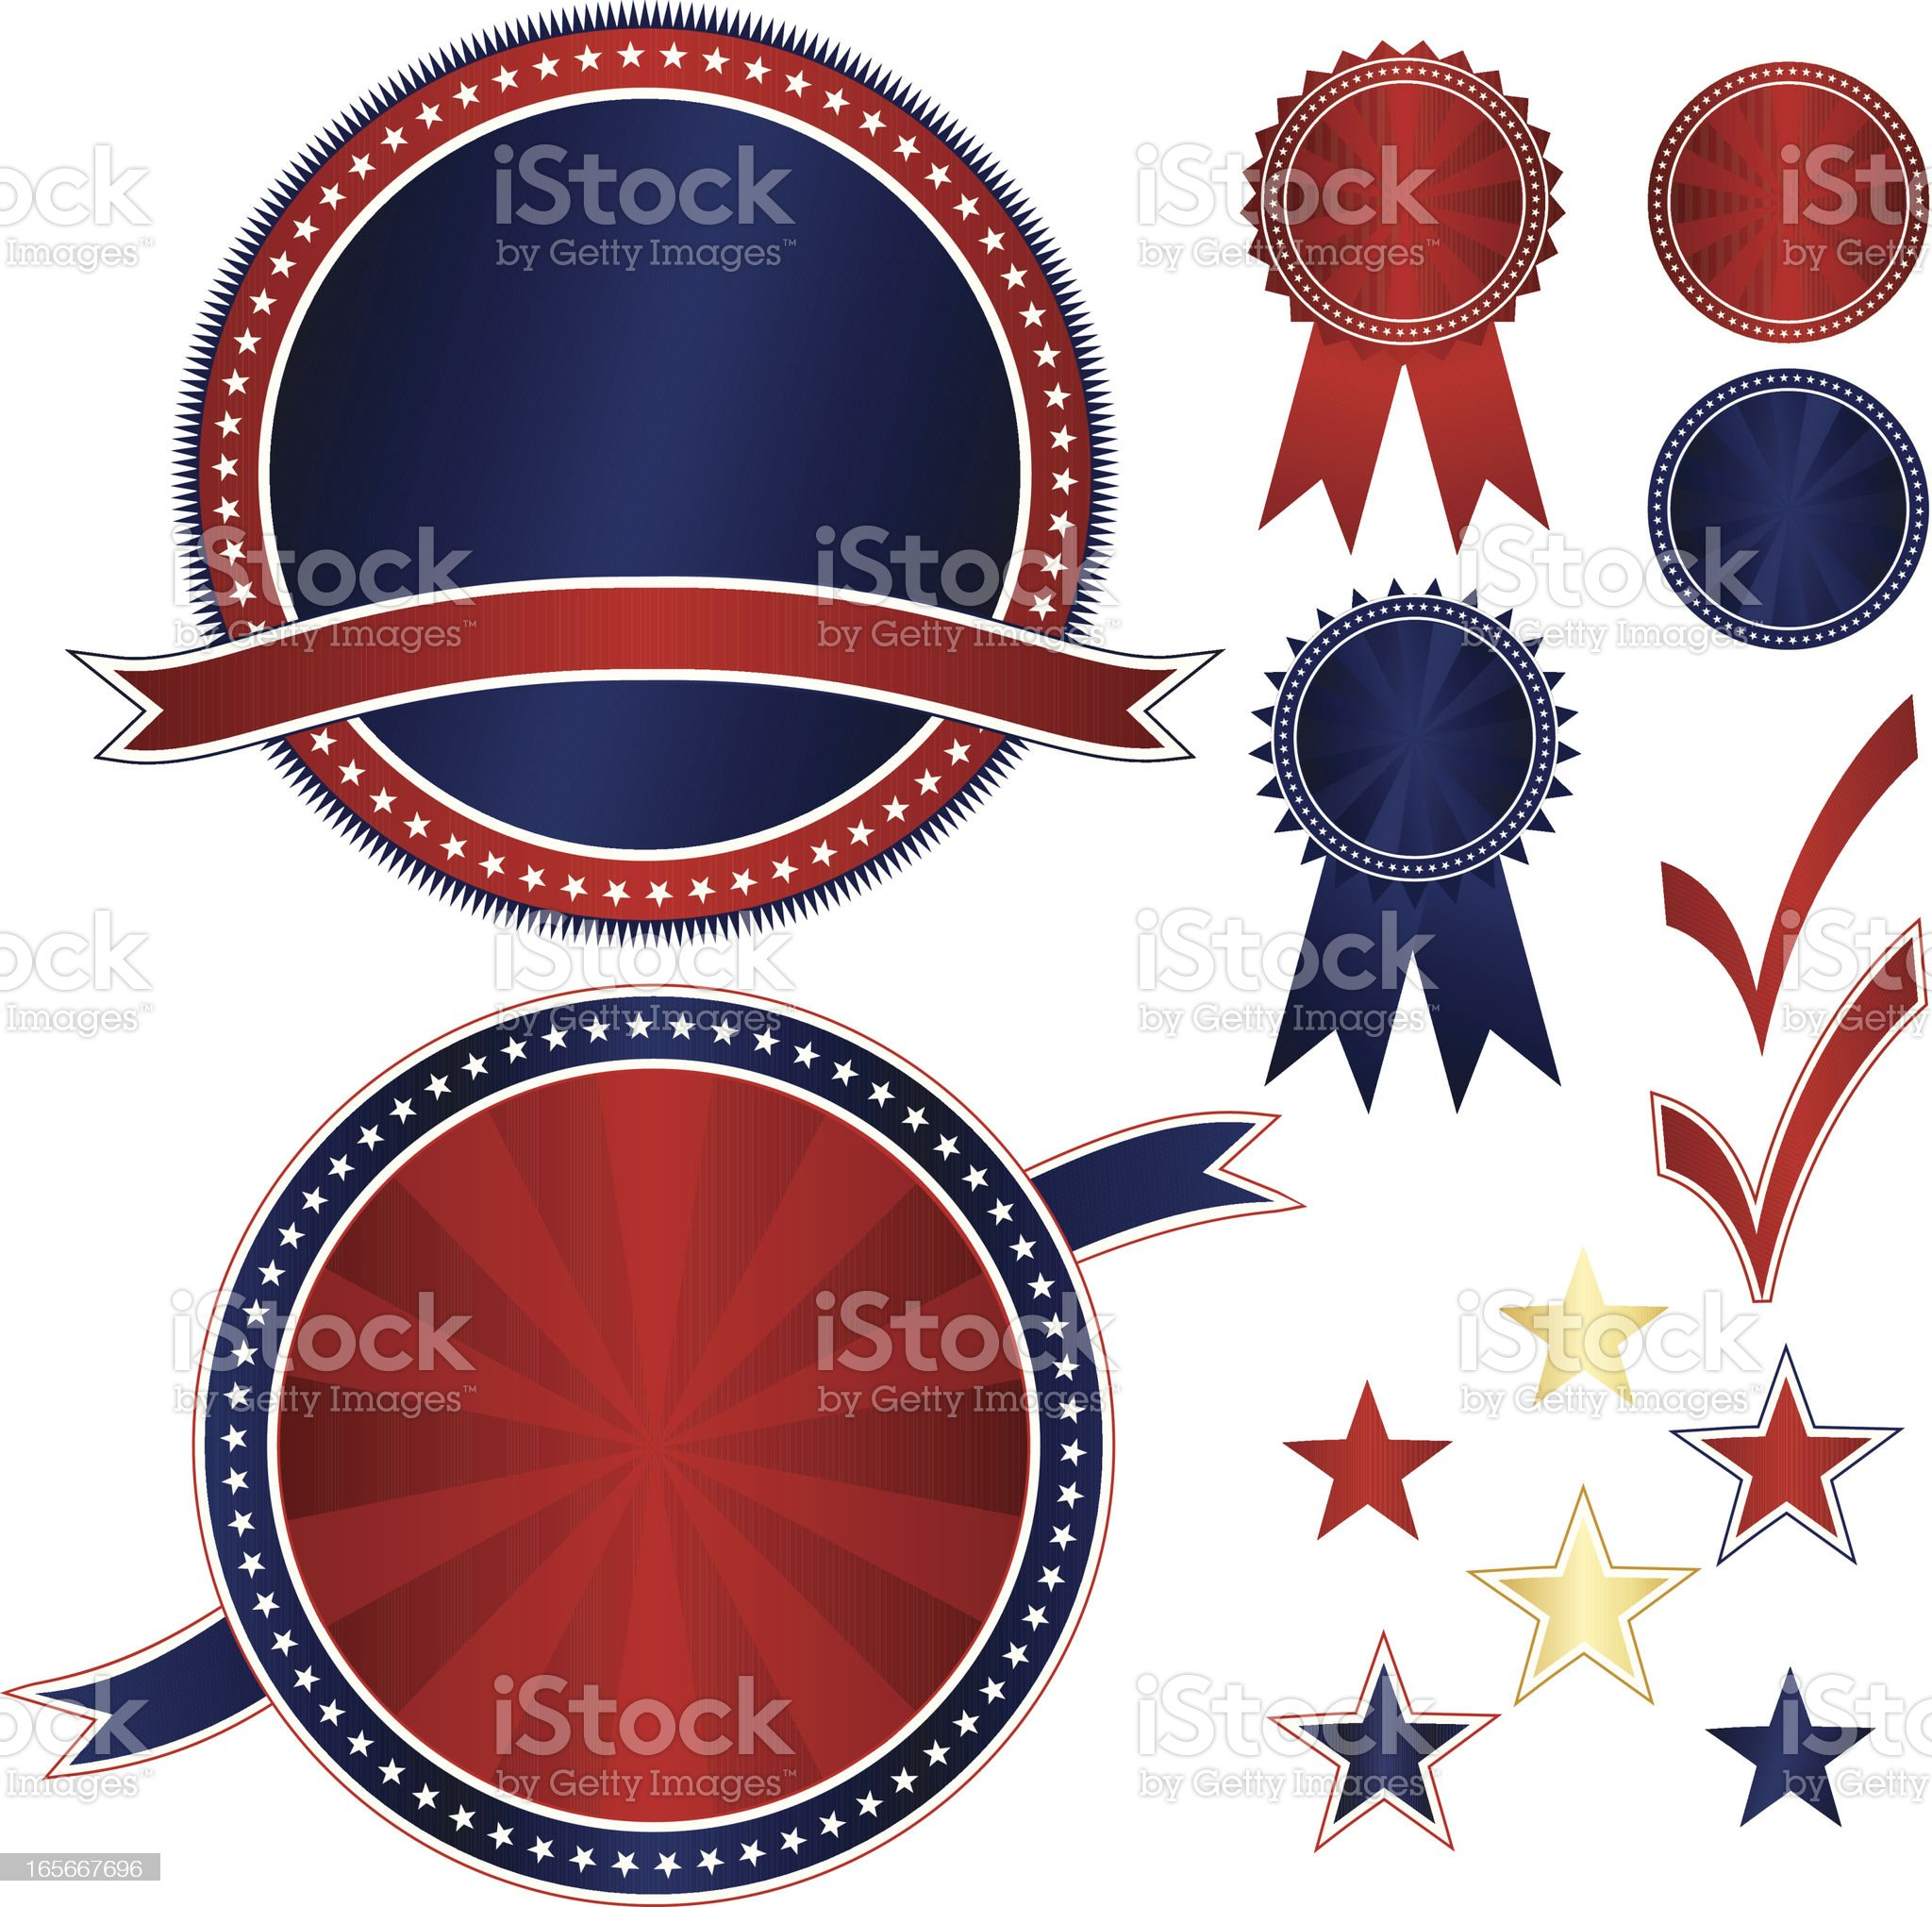 Patriotic Emblems and Stickers Set - Red, White, Blue, Gold royalty-free stock vector art